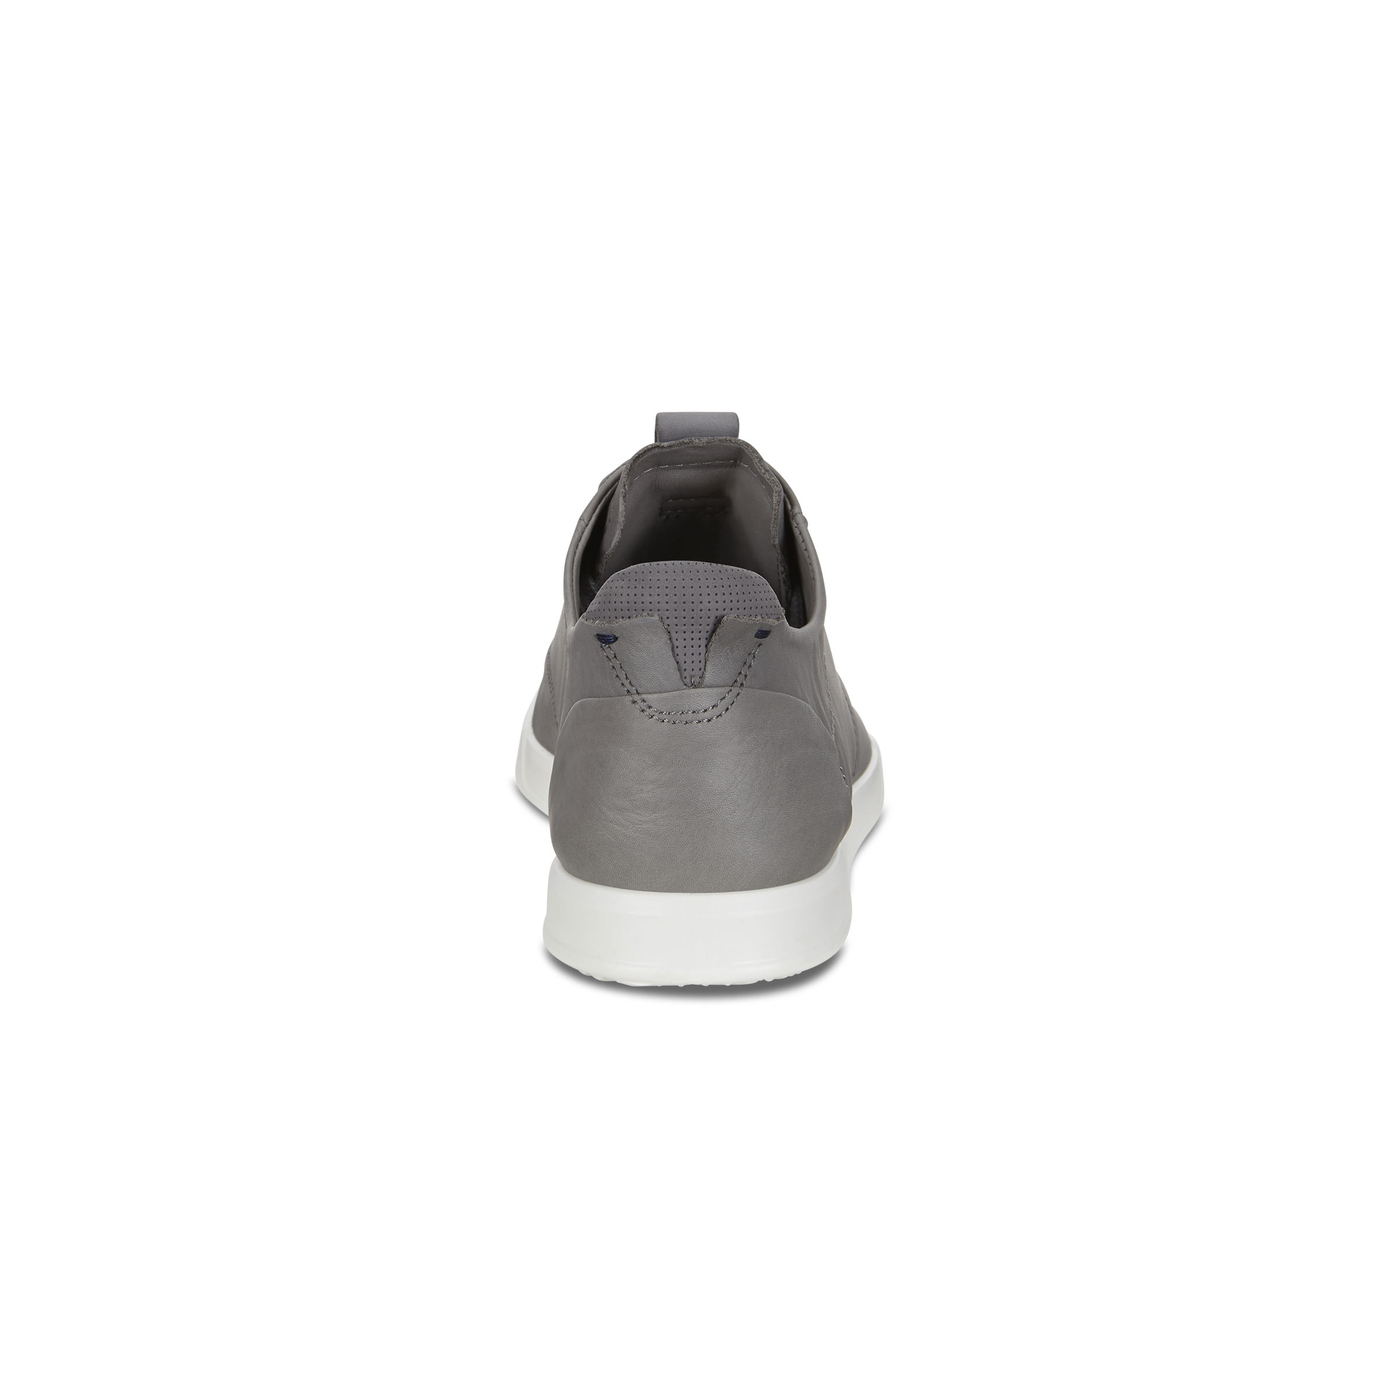 ECCO COLLIN2 Packable Sneaker Tie